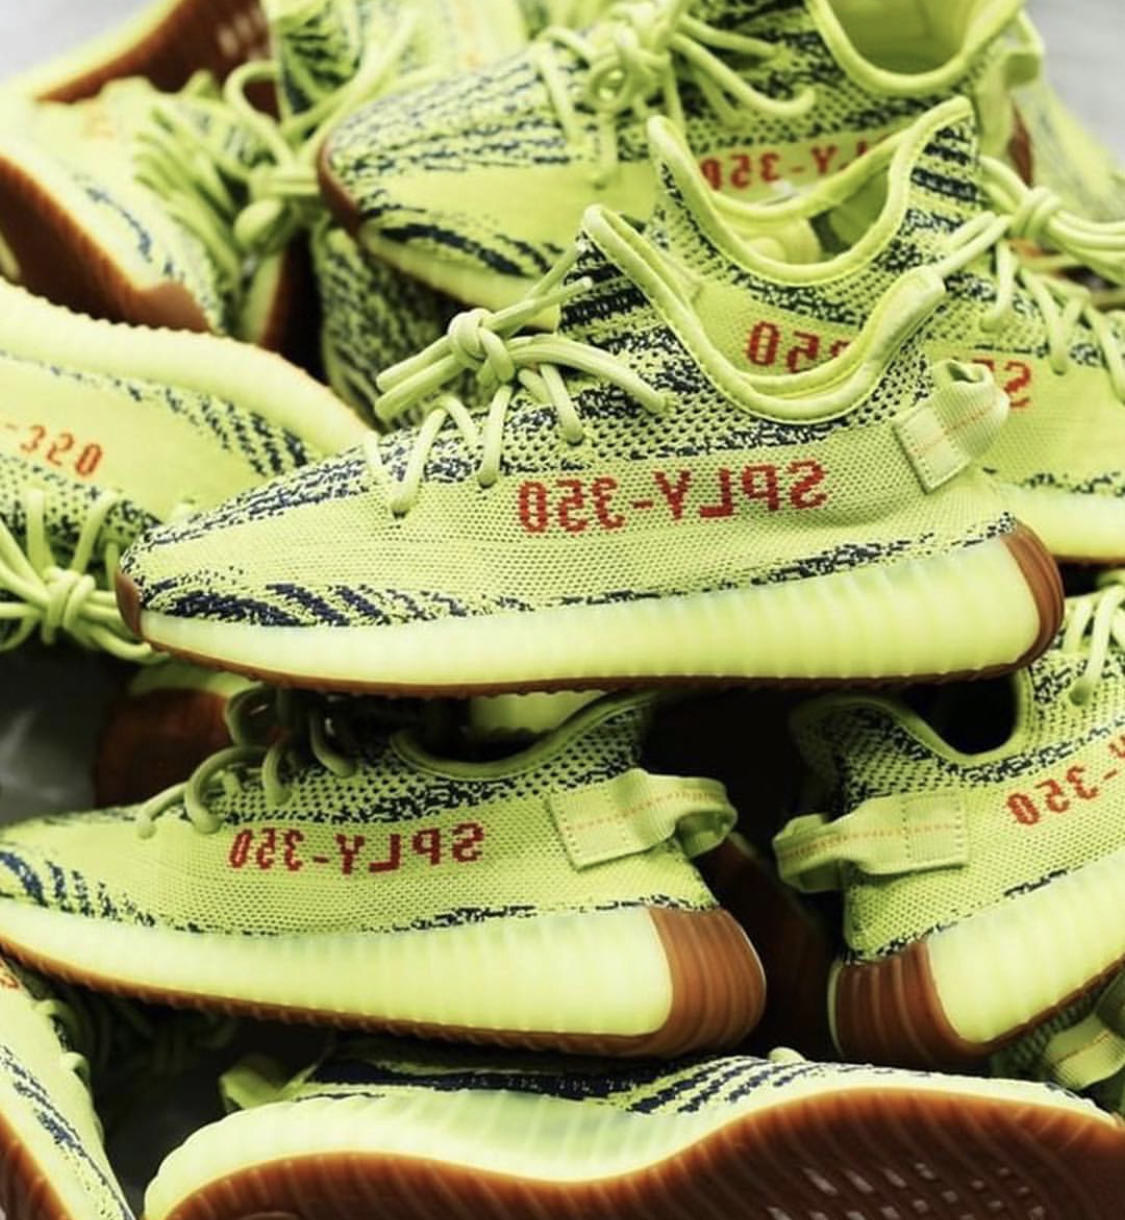 innovative design 3d822 19f0f Now Available: adidas YEEZY 350 V2